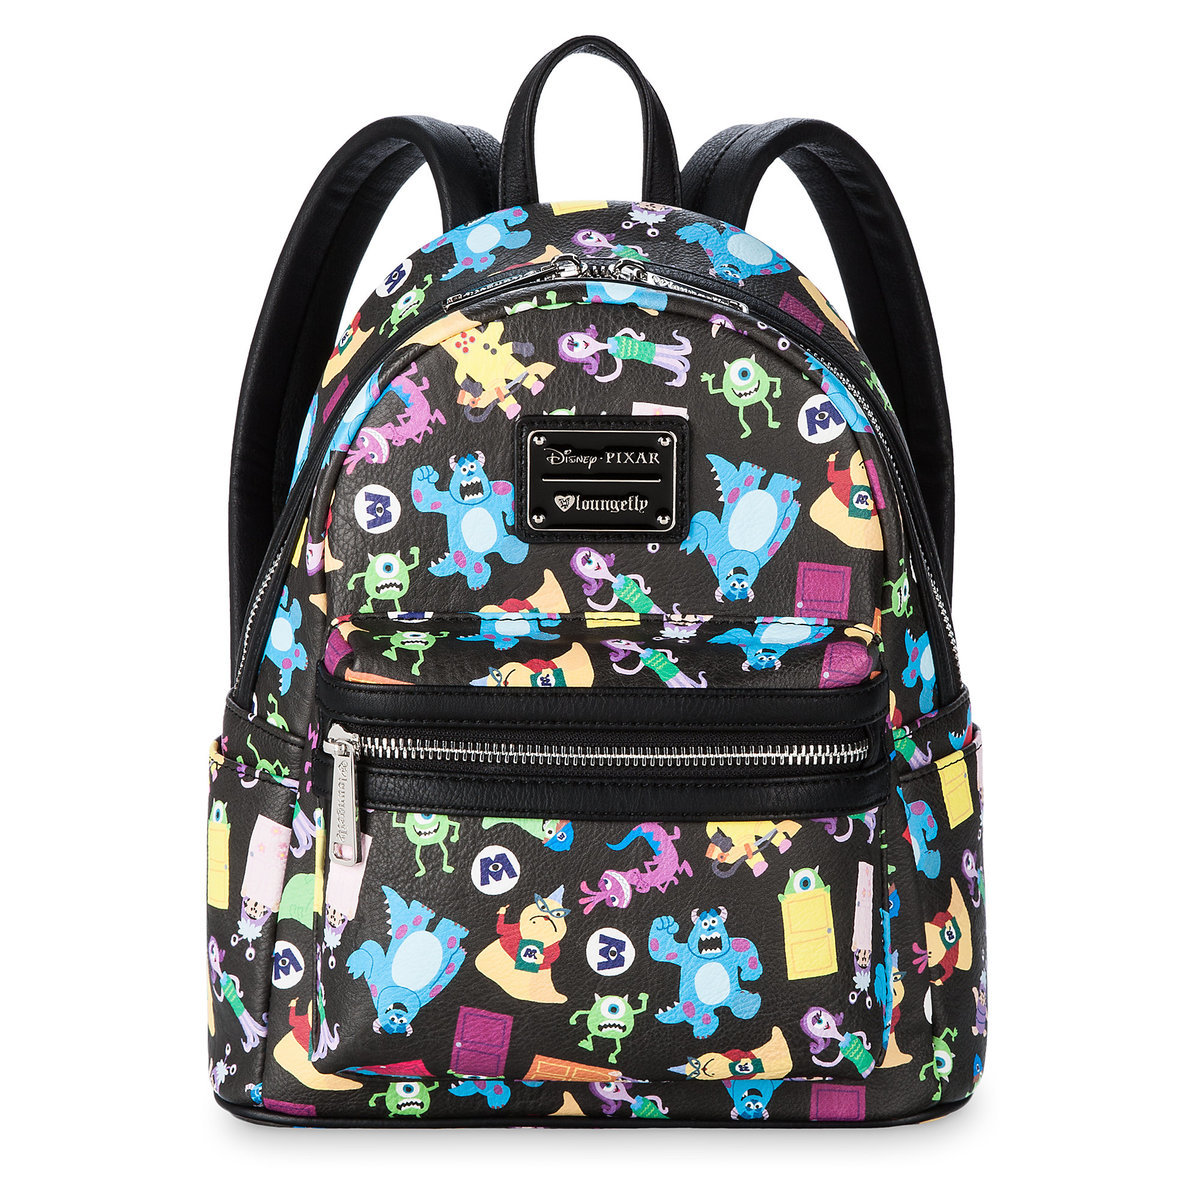 858f0600643 Add to My Lists. Disney Parks Mini Backpack - Monsters Inc Cuties by  Loungefly